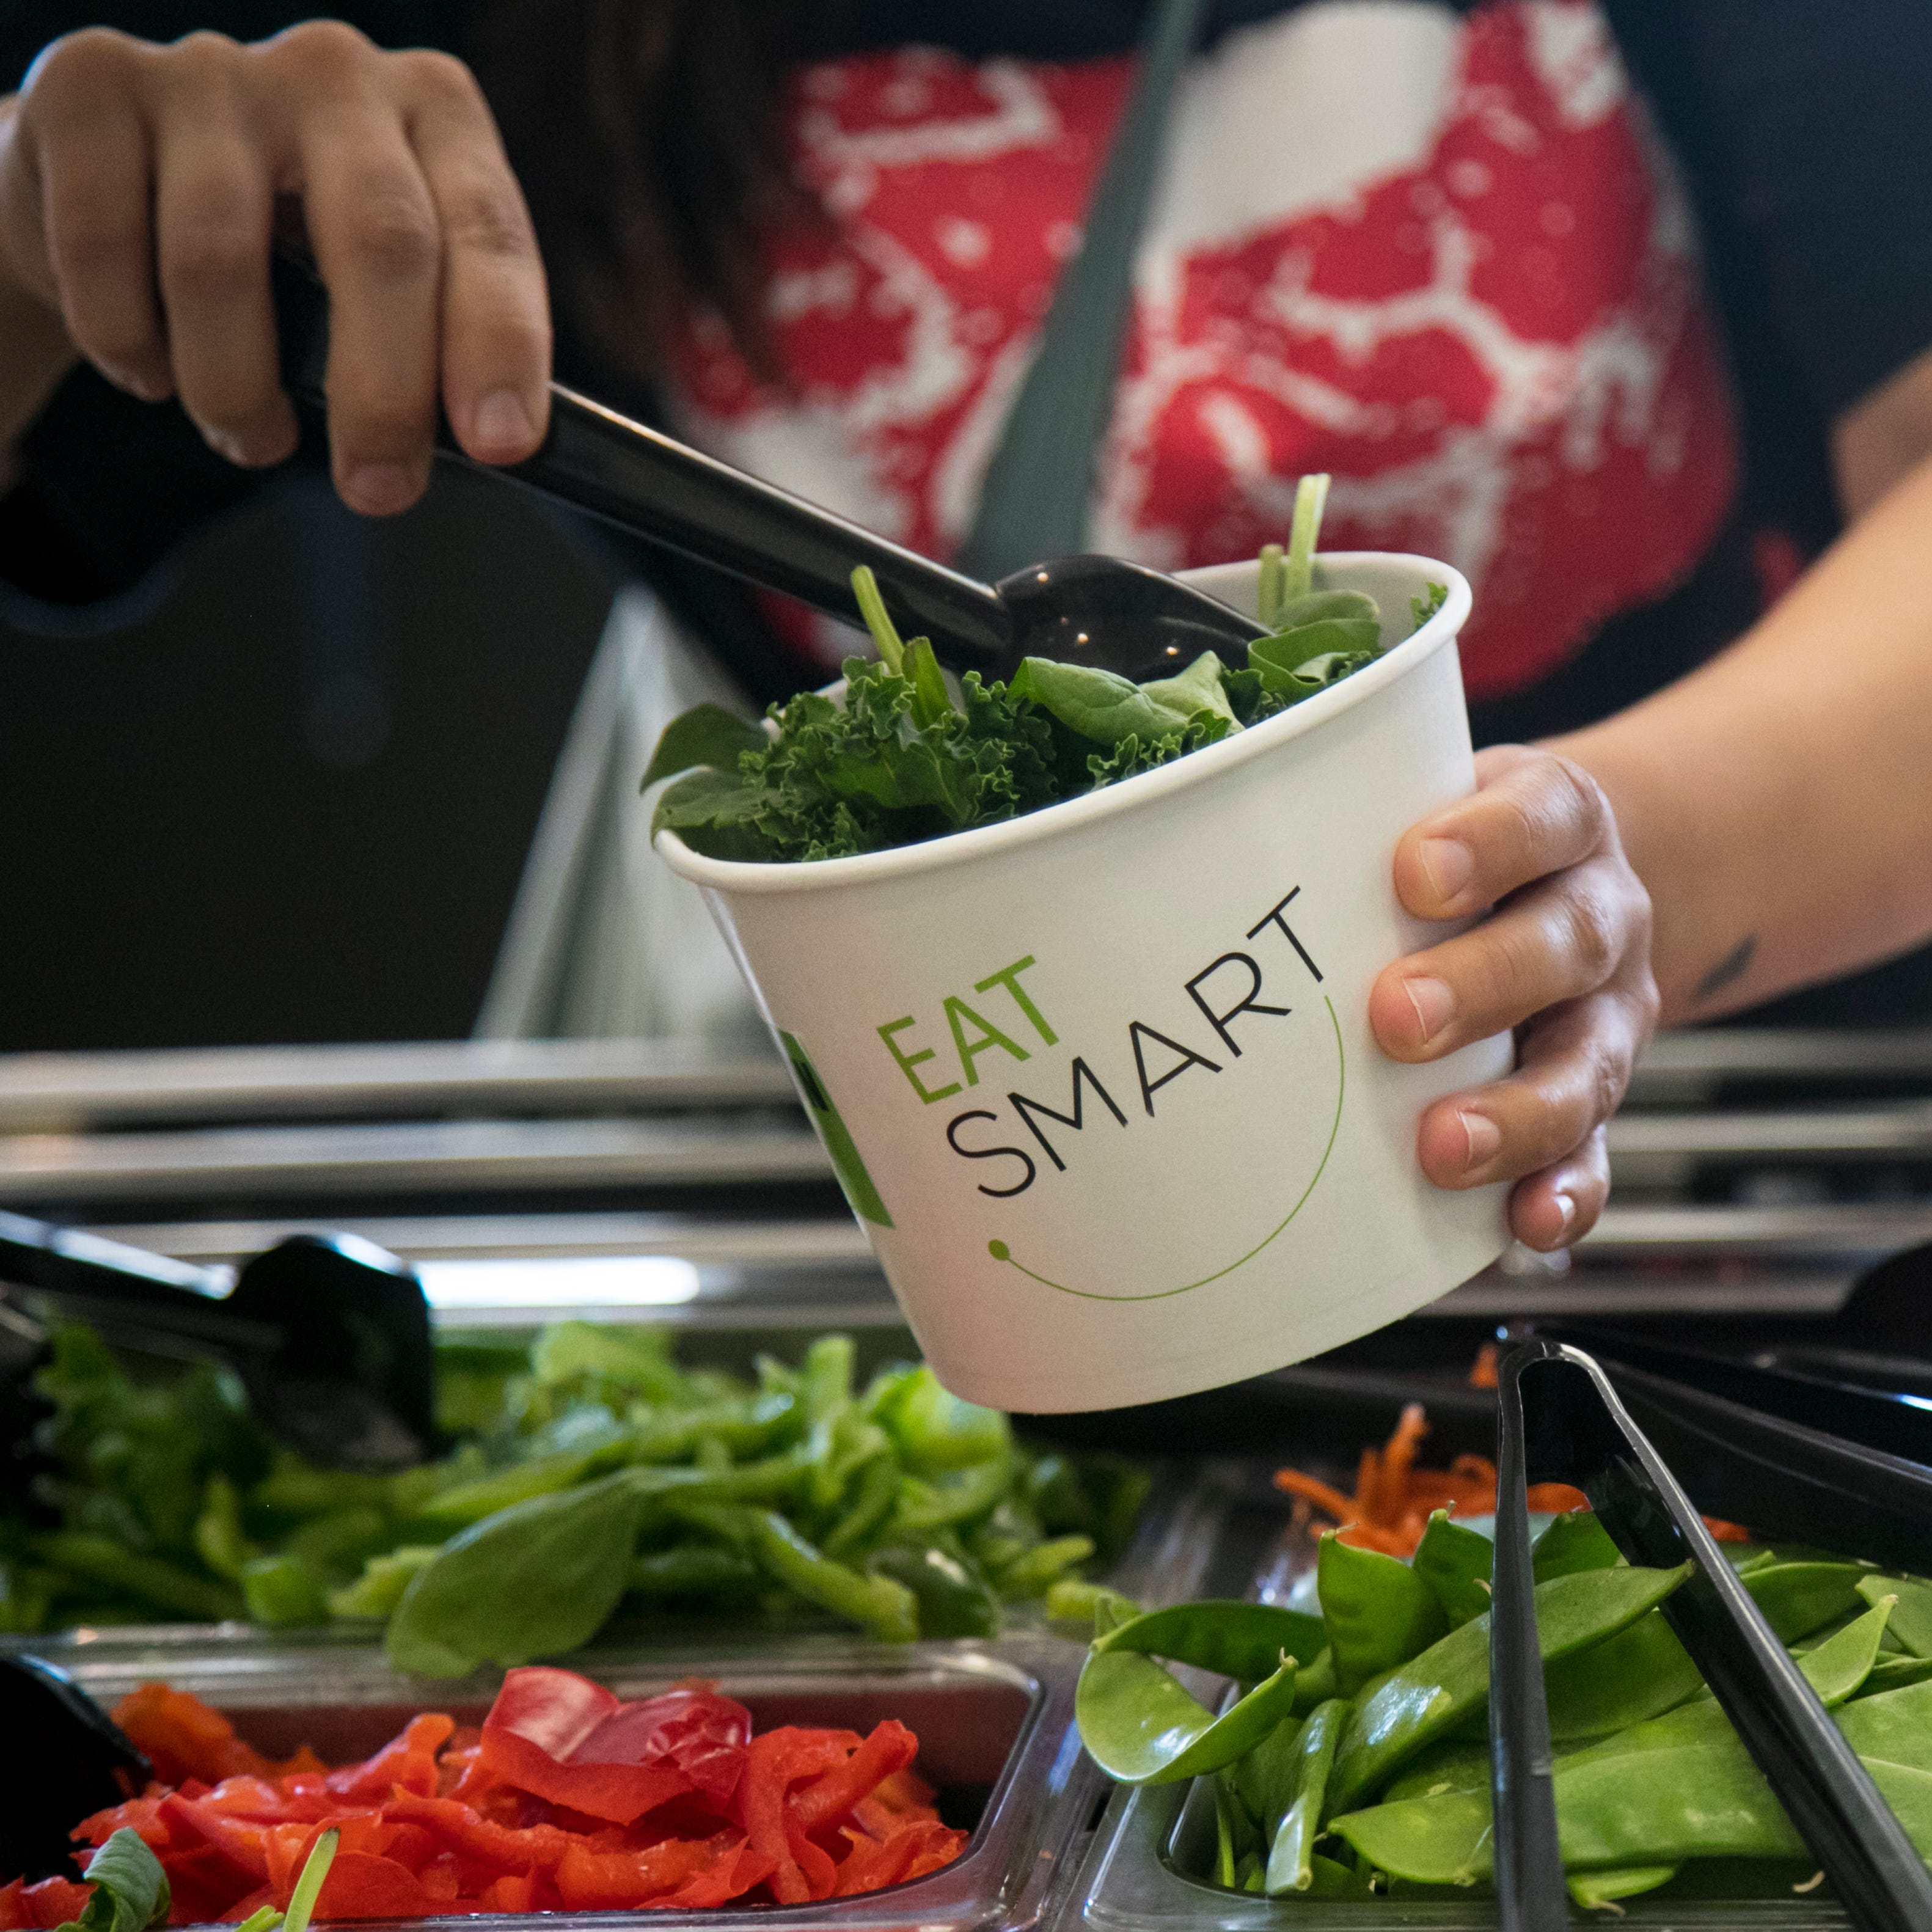 Eat Smart brings quick, clean eating to Cape Coral and soon Fort Myers